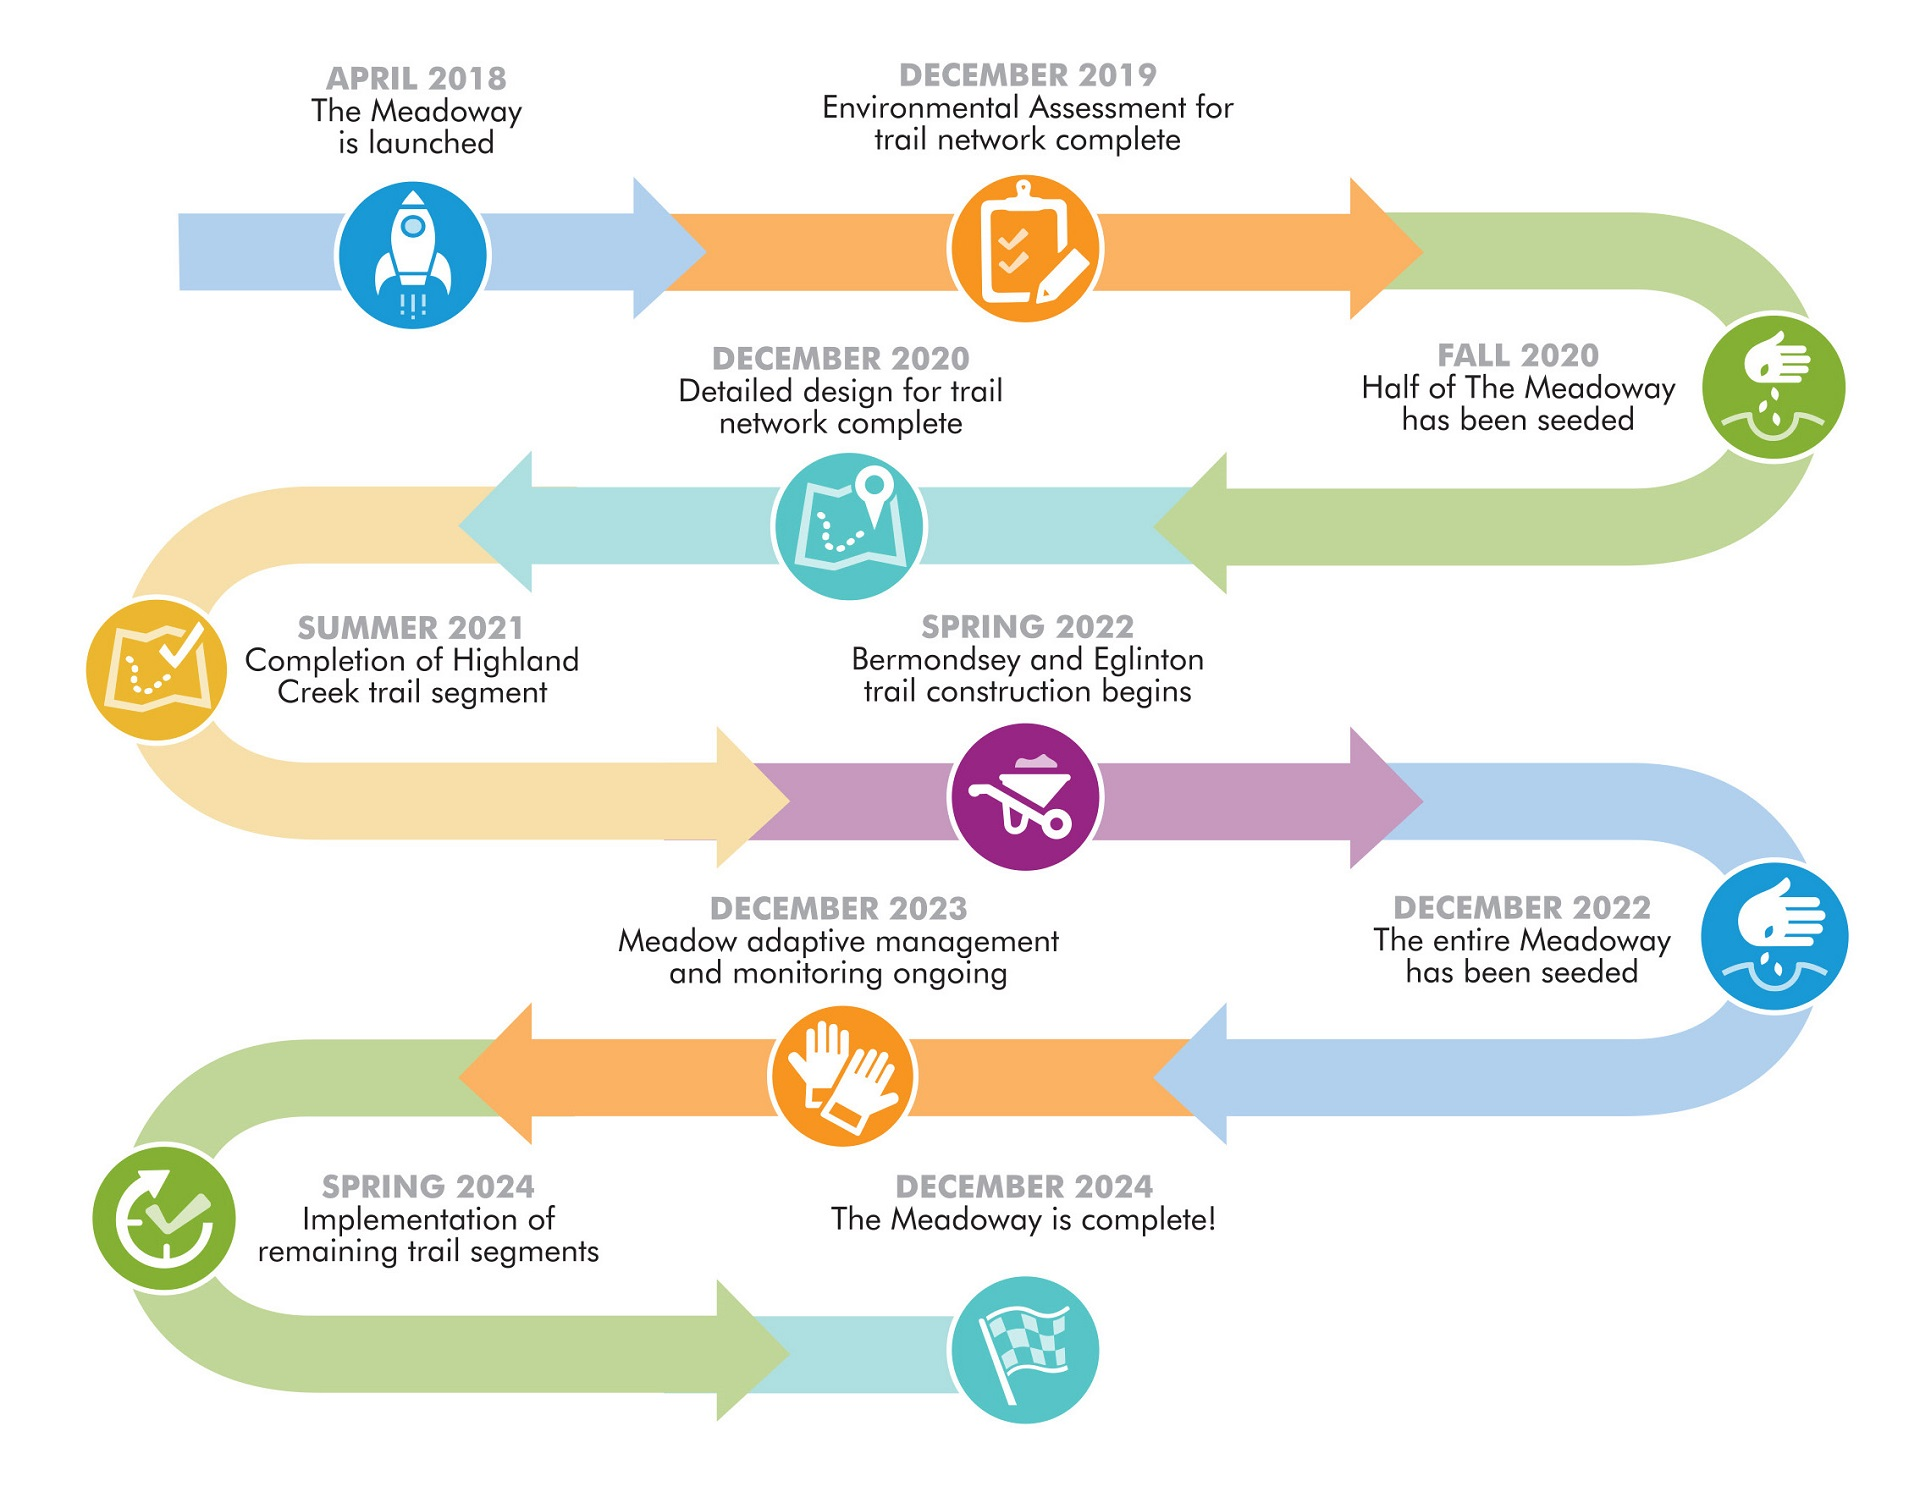 The Meadoway project timeline